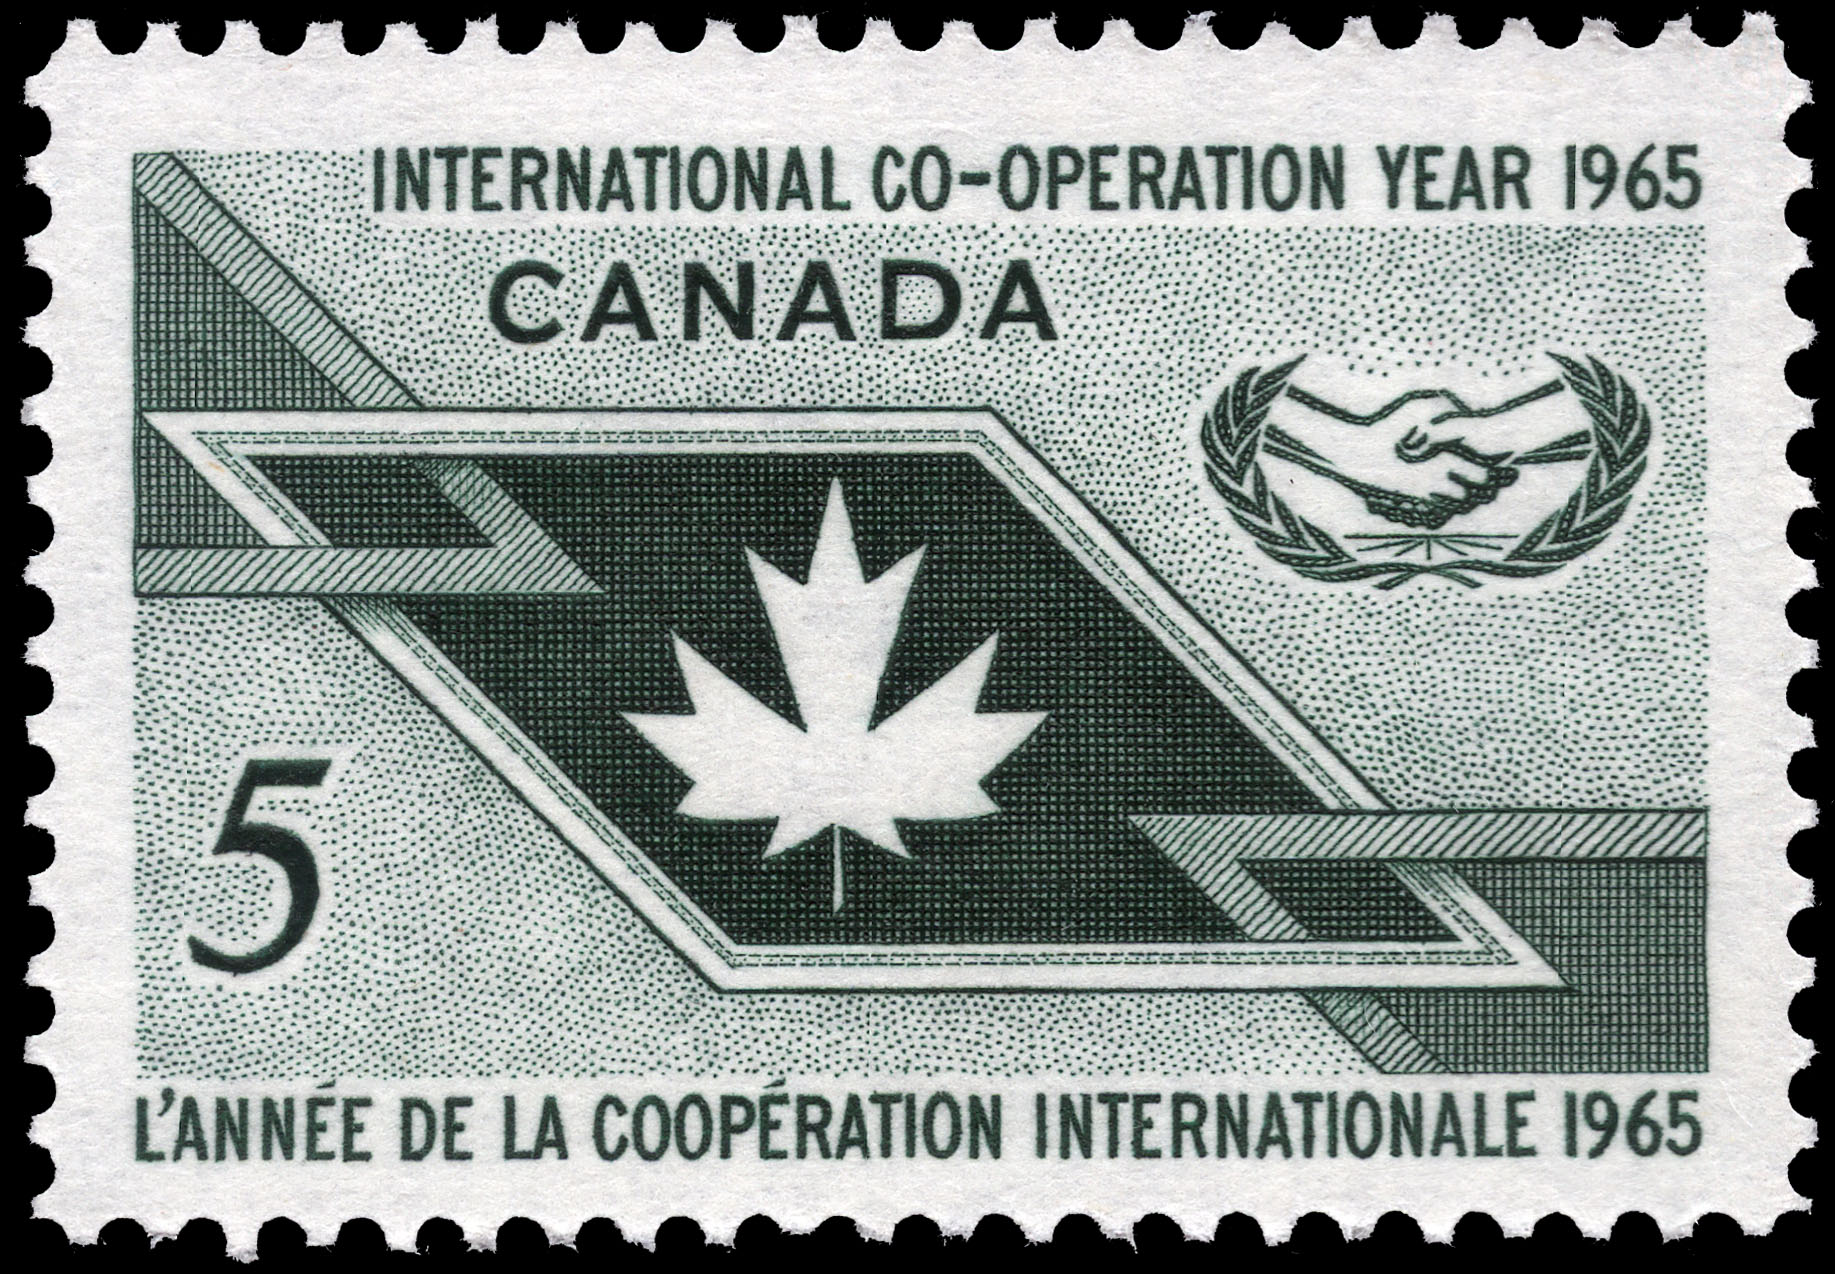 International Co-operation Year, 1965 Canada Postage Stamp